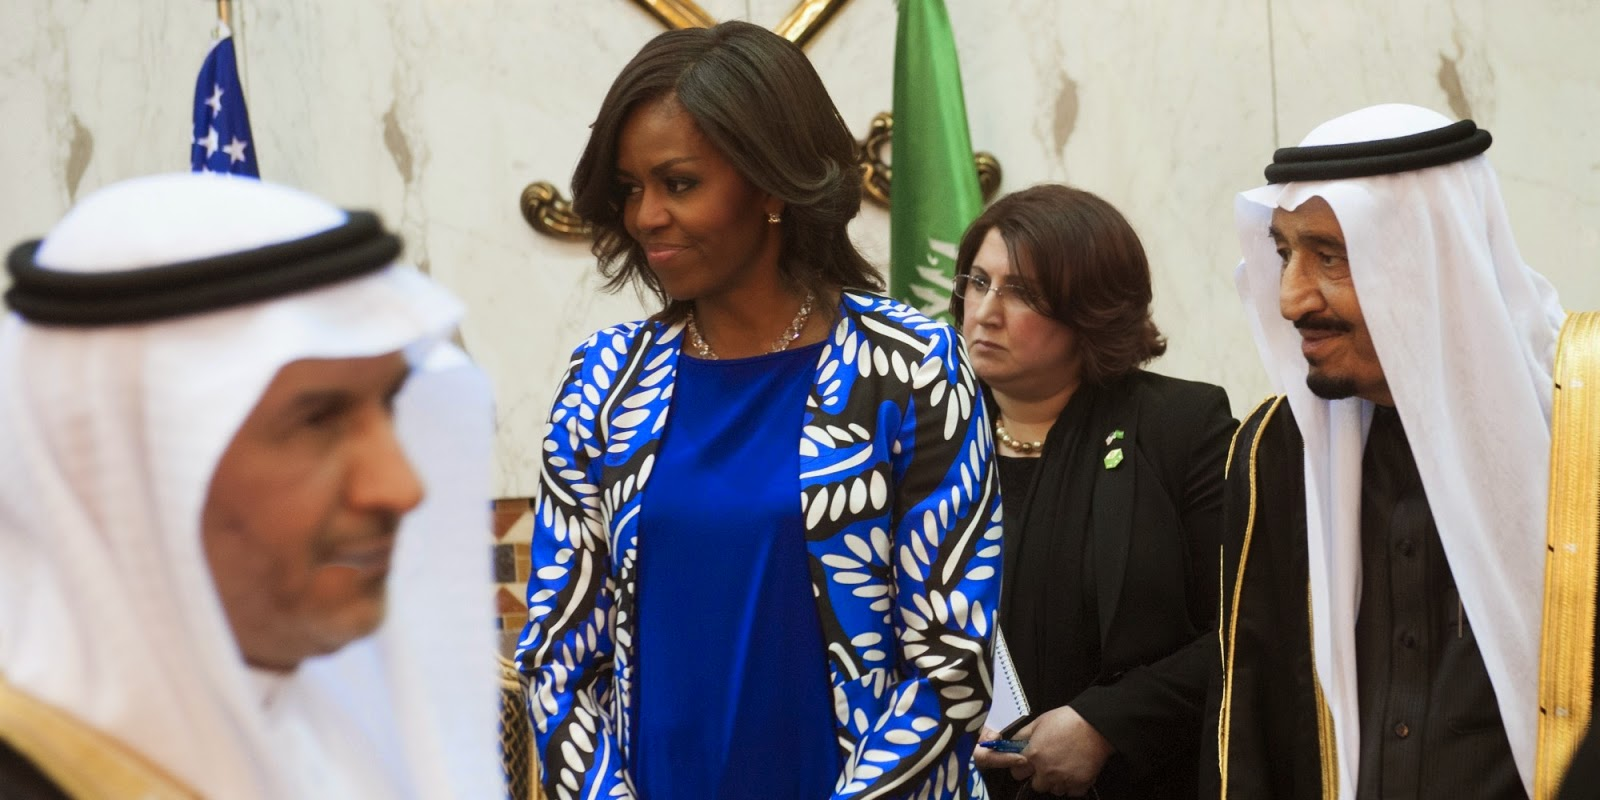 Some Saudis criticized Michelle Obama's decision not to cover her head on her Saudi visit